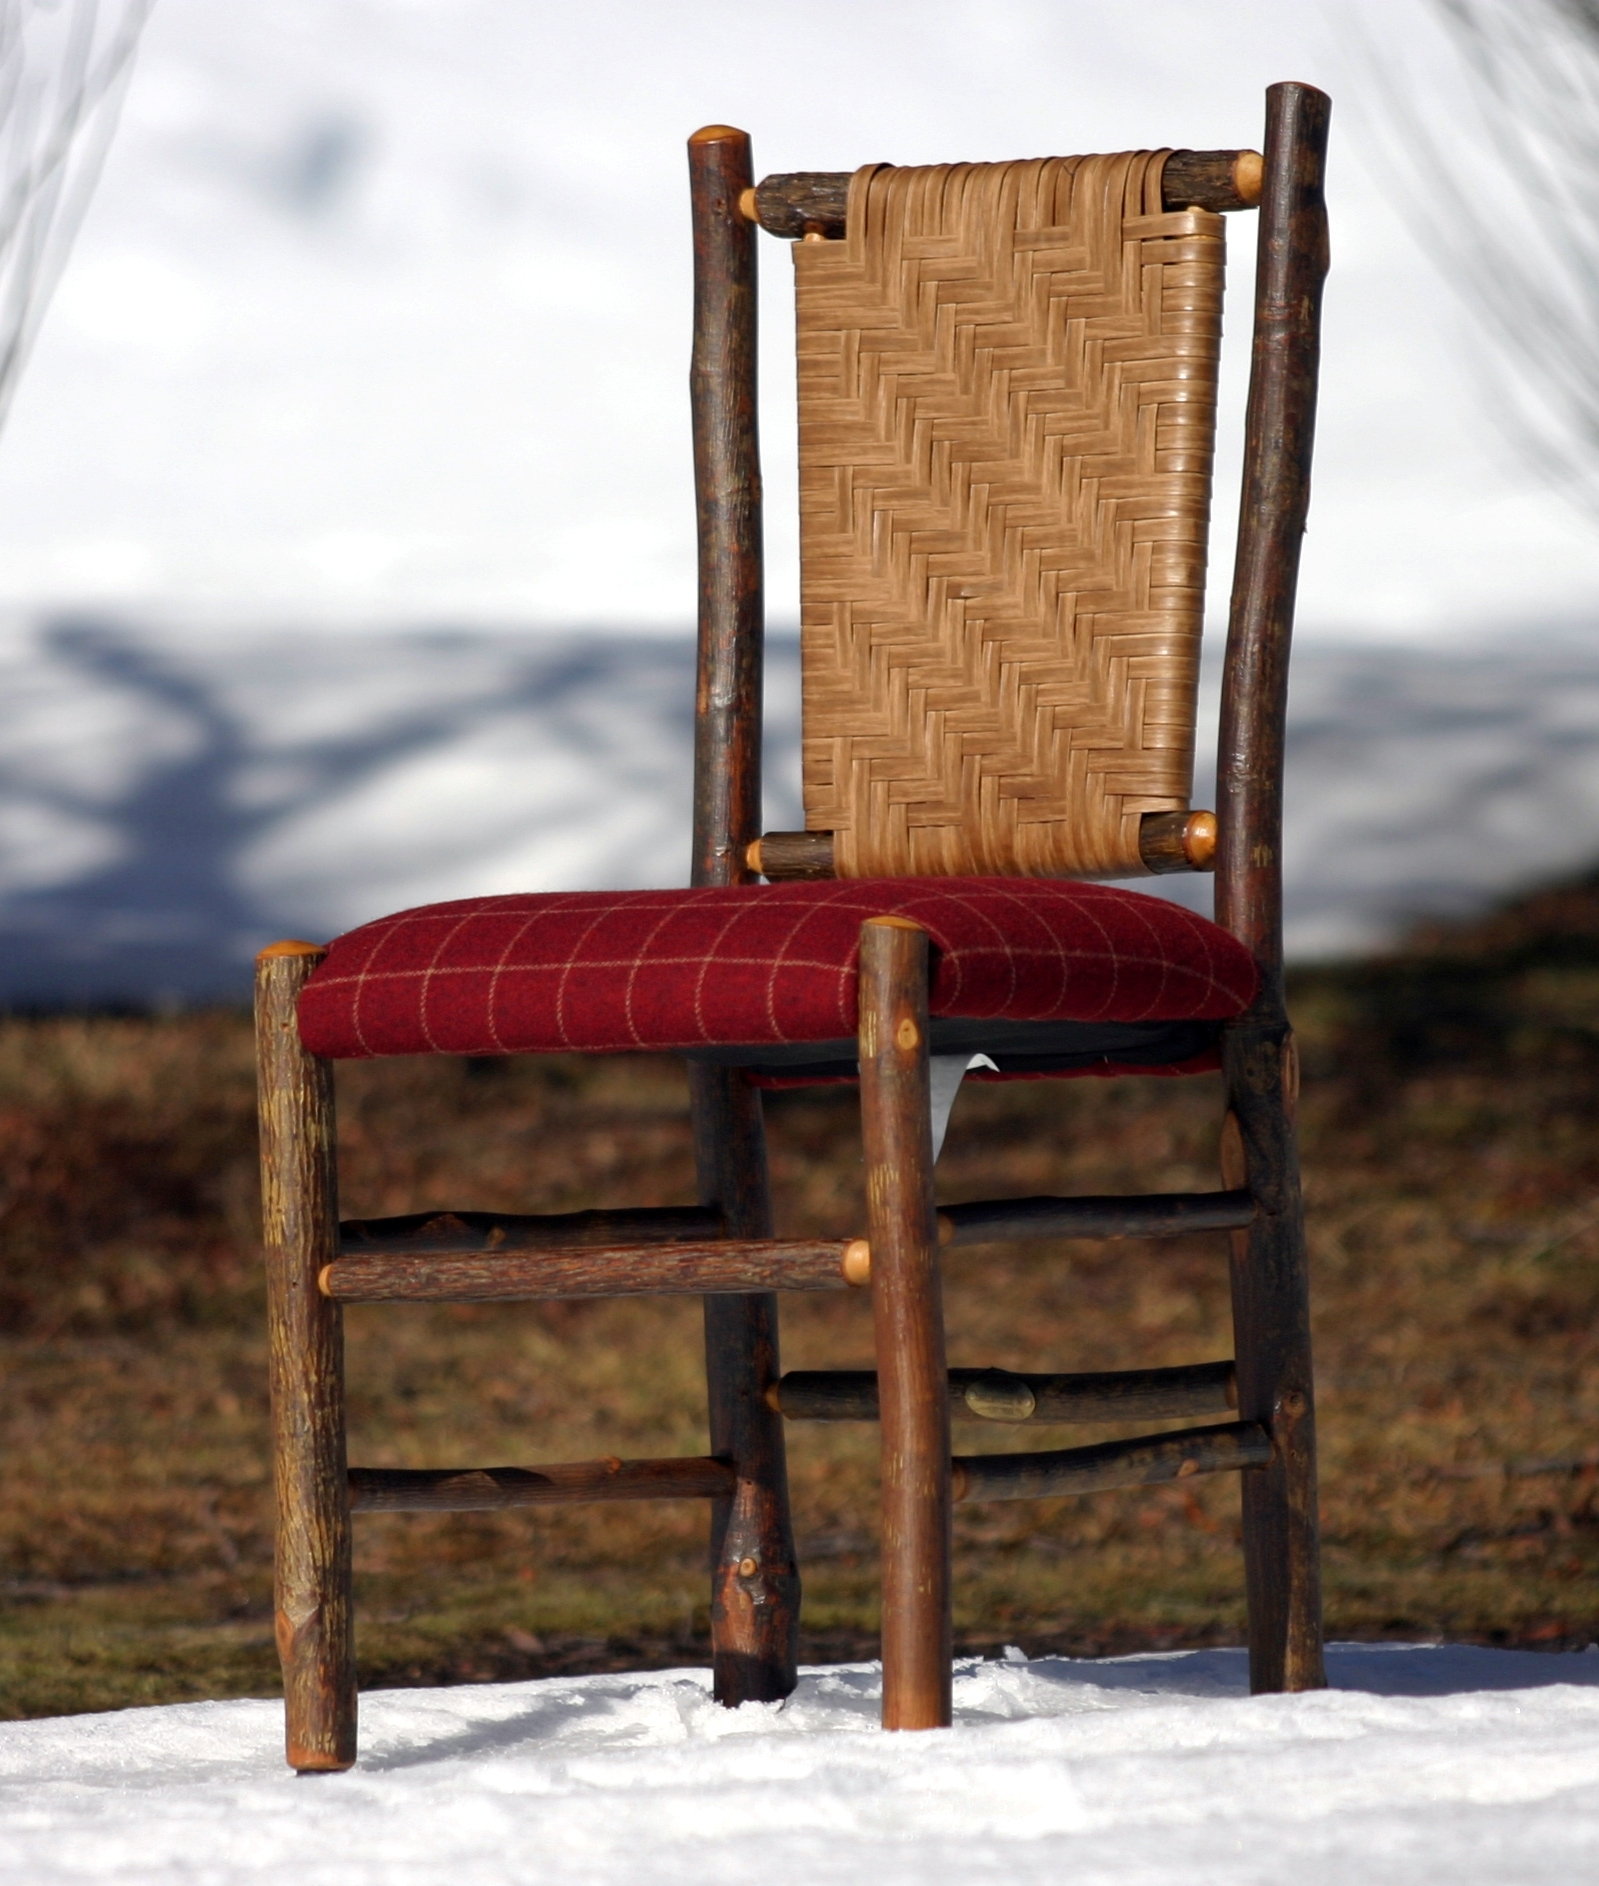 online-store-chair-on-snow-cropped.jpg